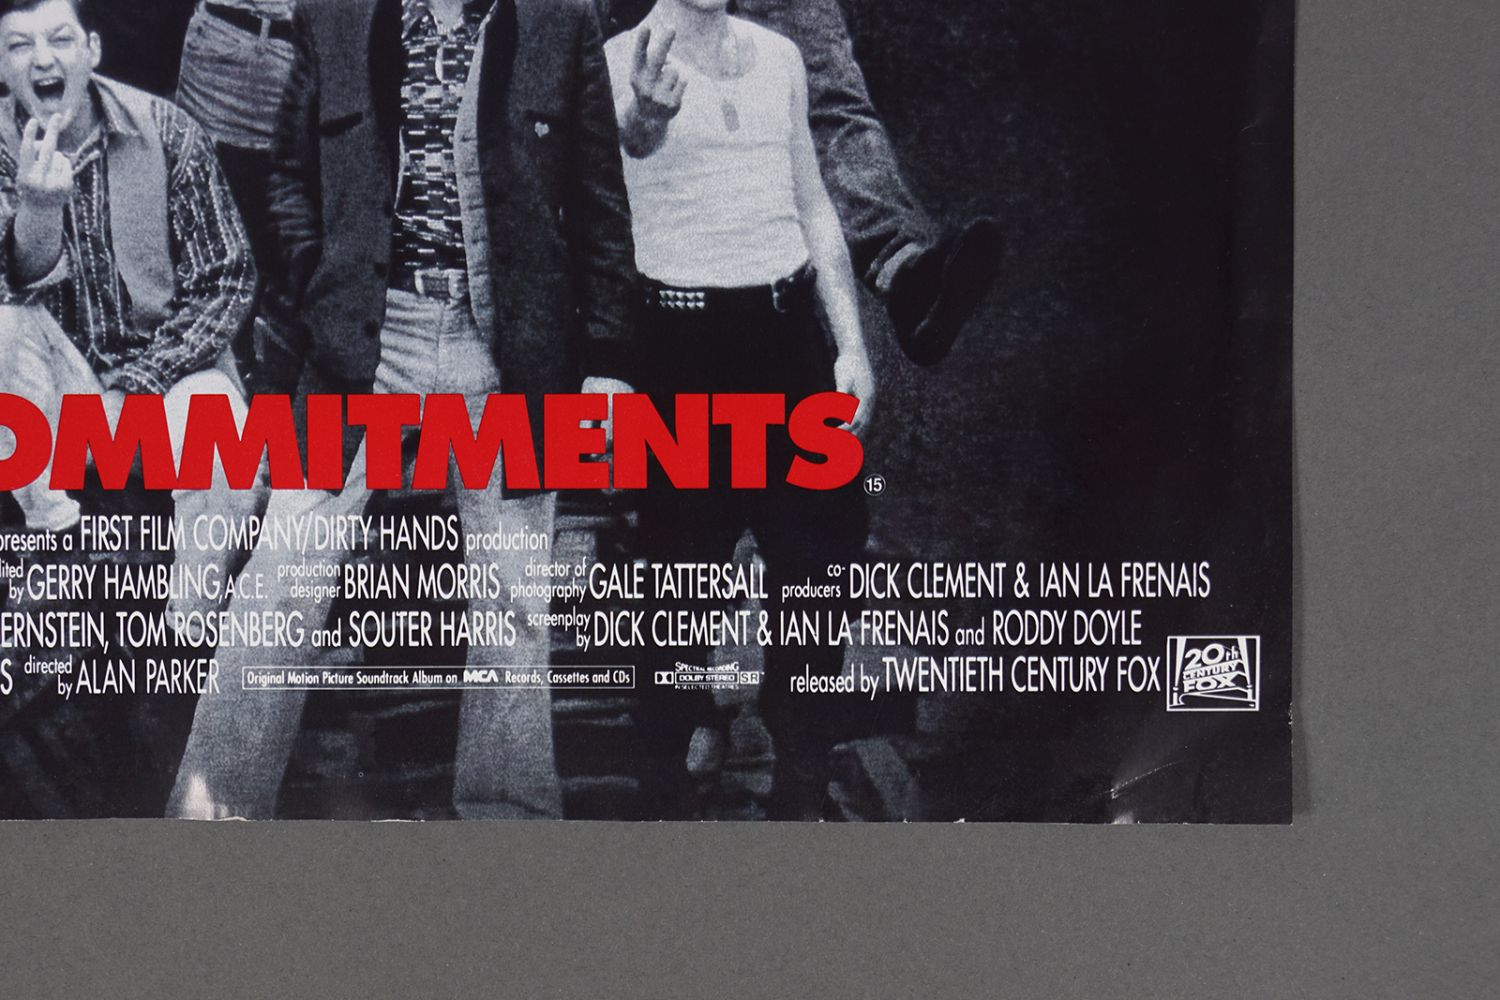 THE COMMITMENTS - Image 3 of 3